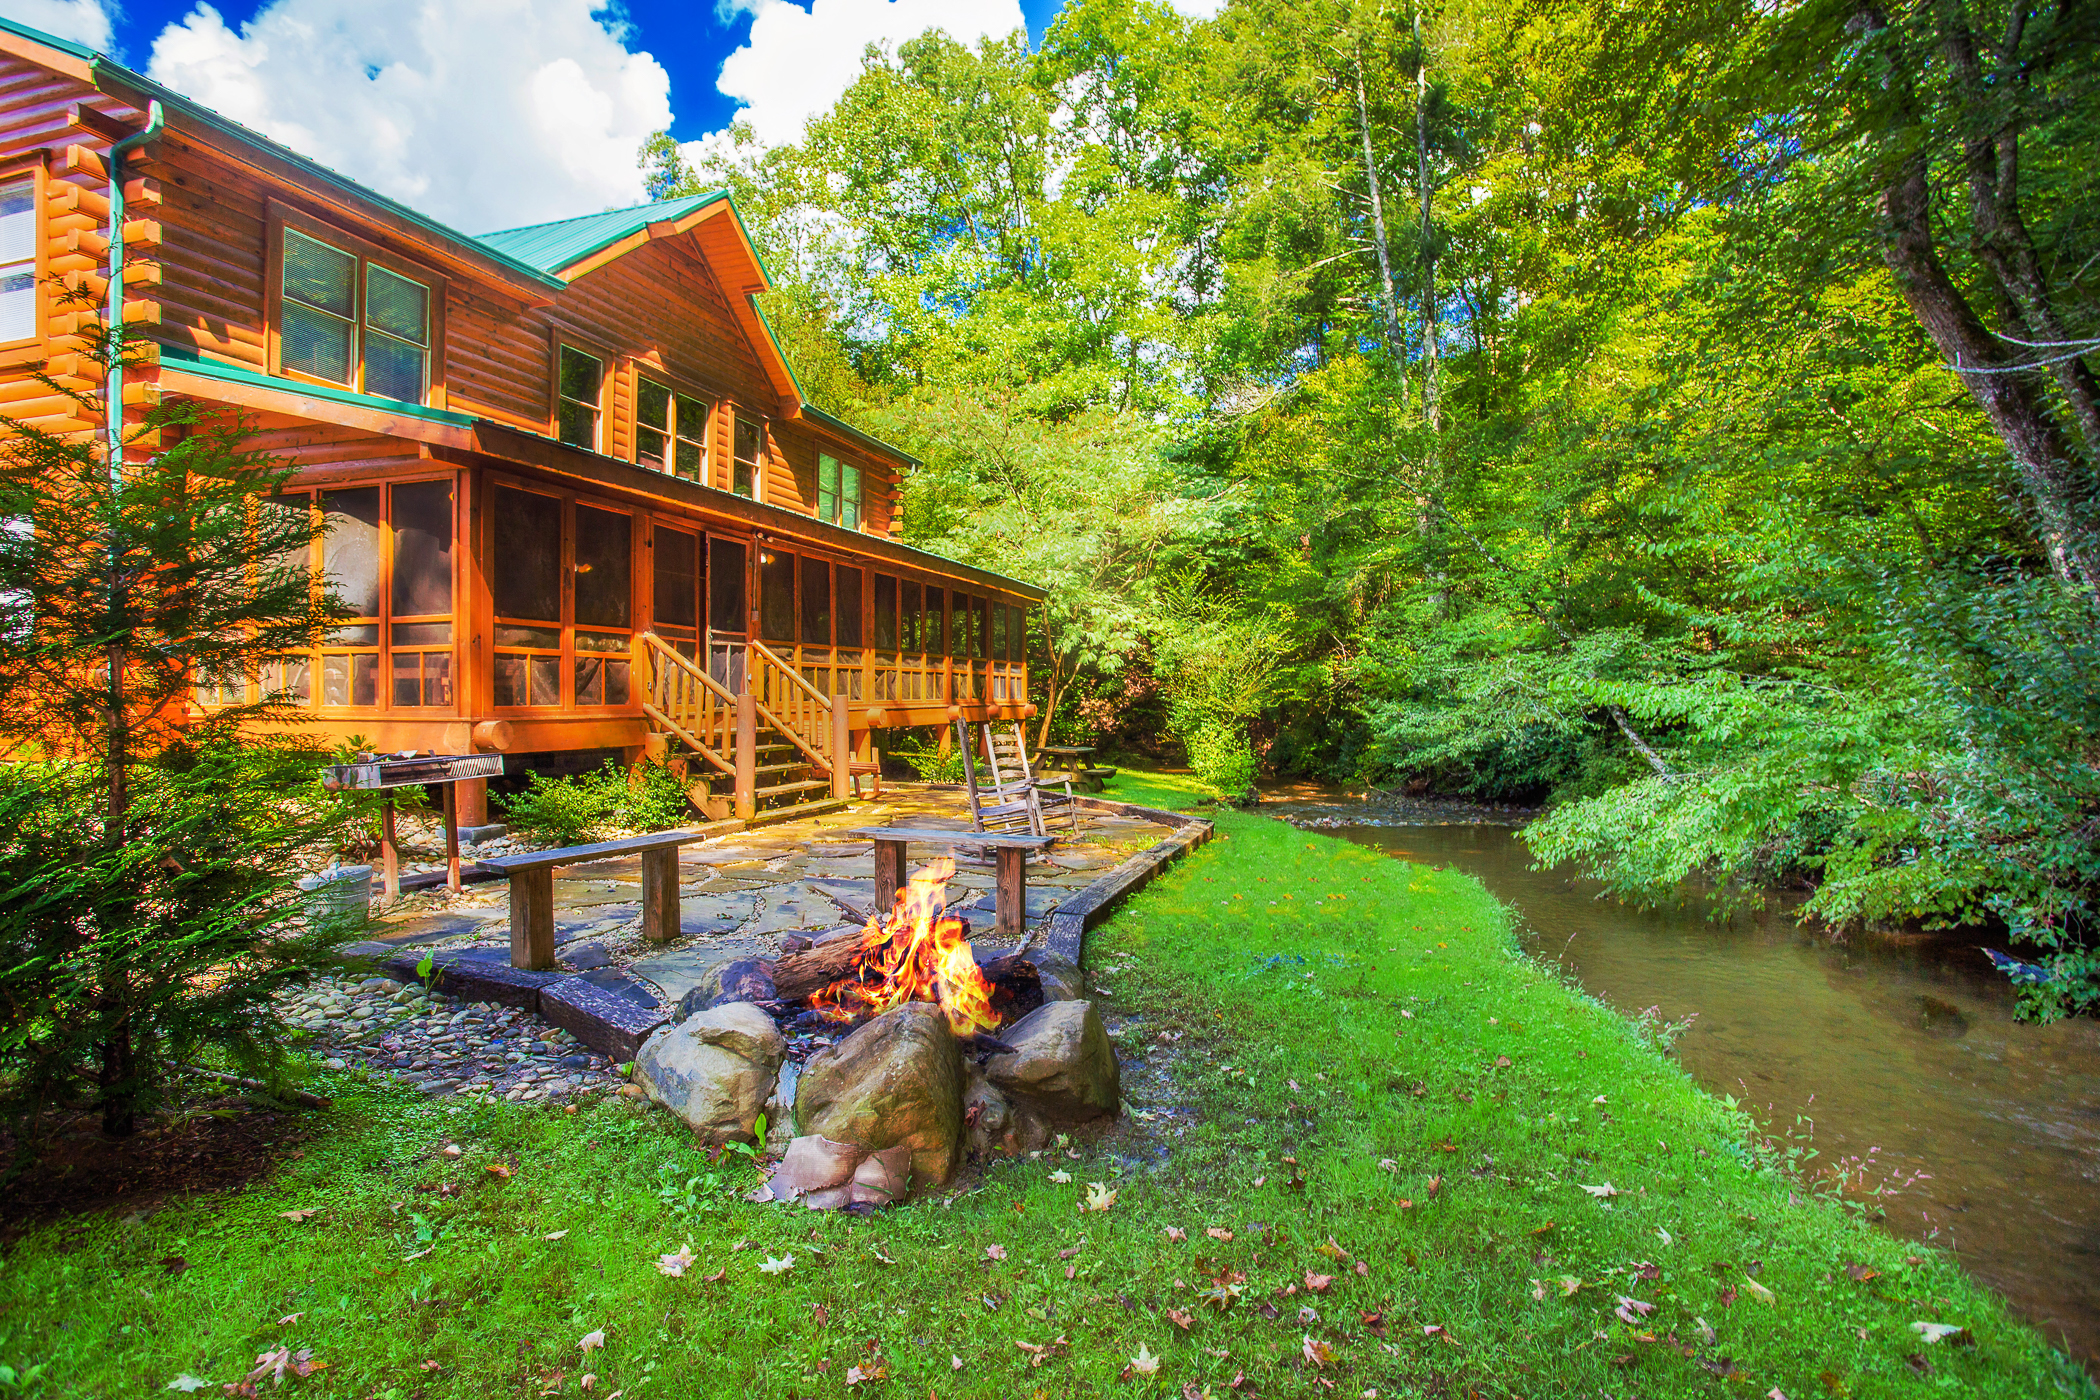 Creekside Getaway Pigeon Forge 8 Bedroom 8 Full Bathroom Place To Stay On Vacation 133958 Find Rentals